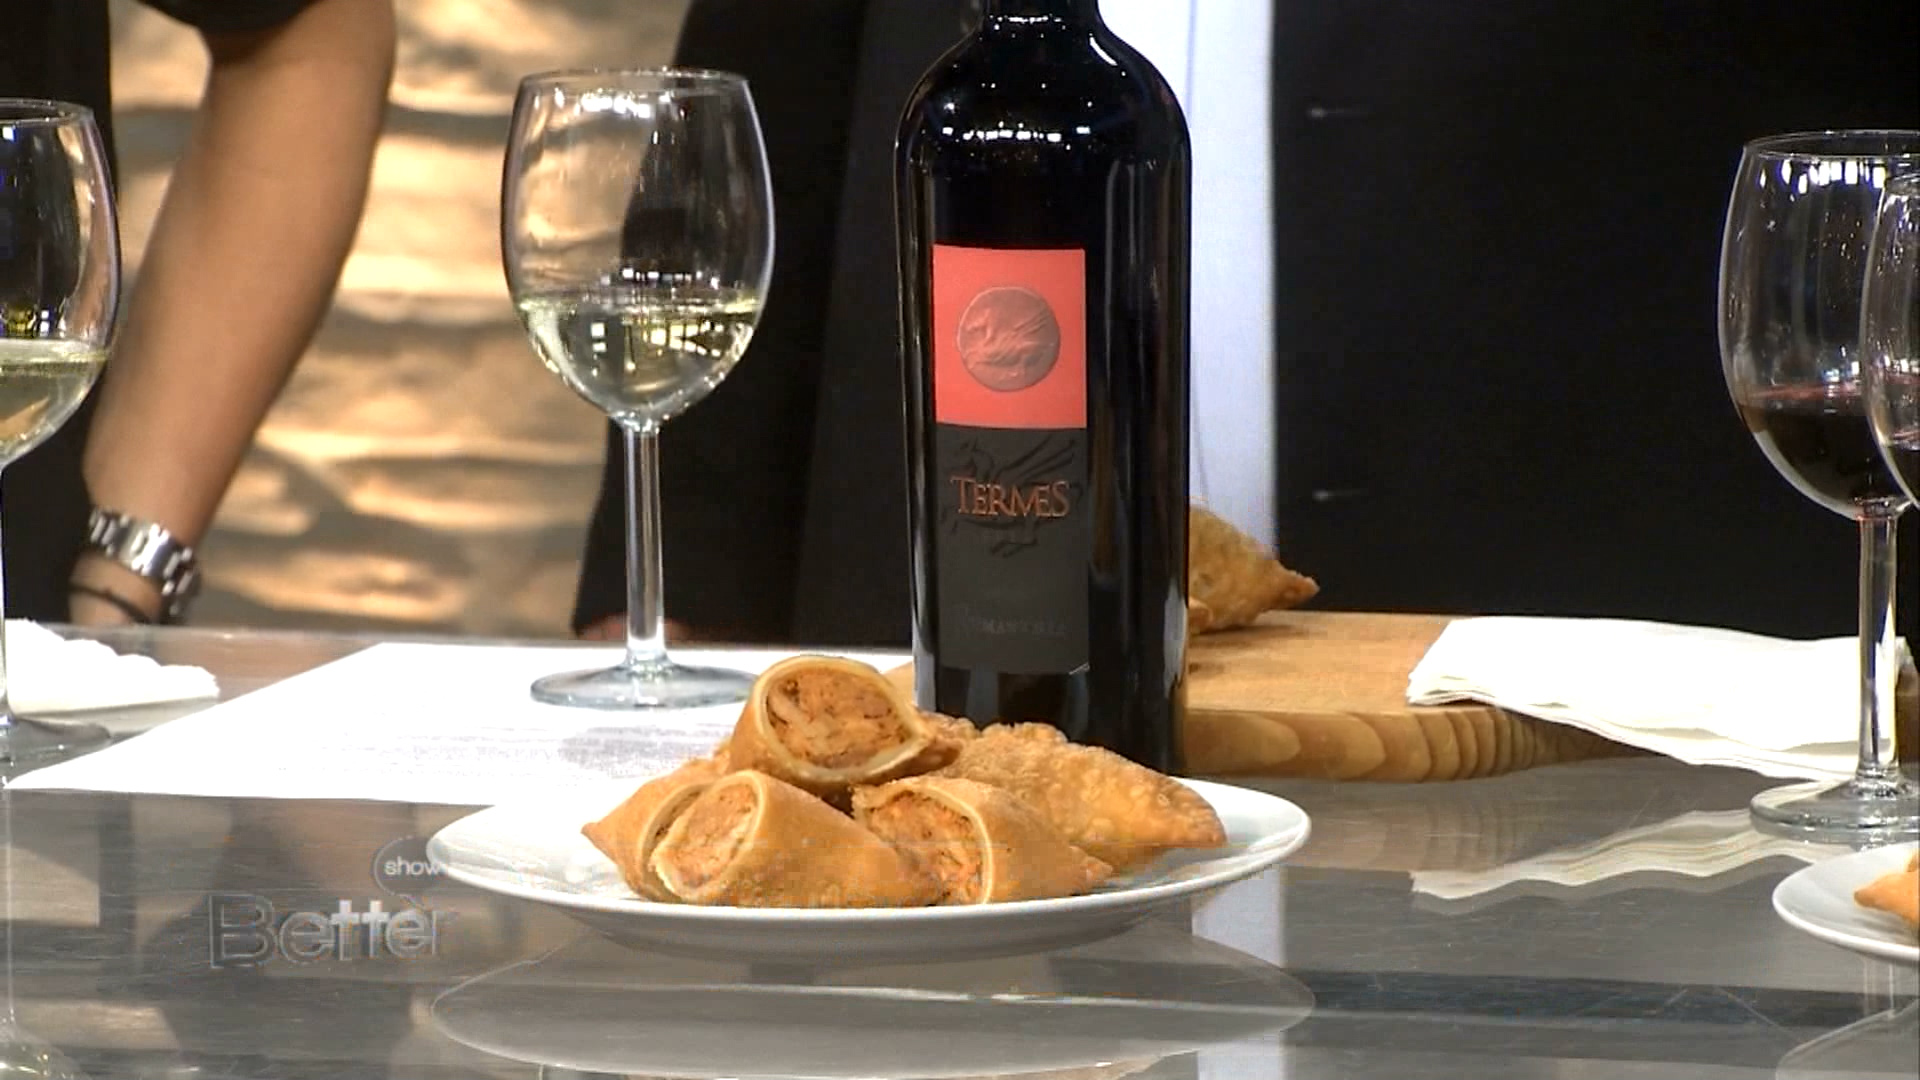 What Are Great Wines to Pair With Empanadas?